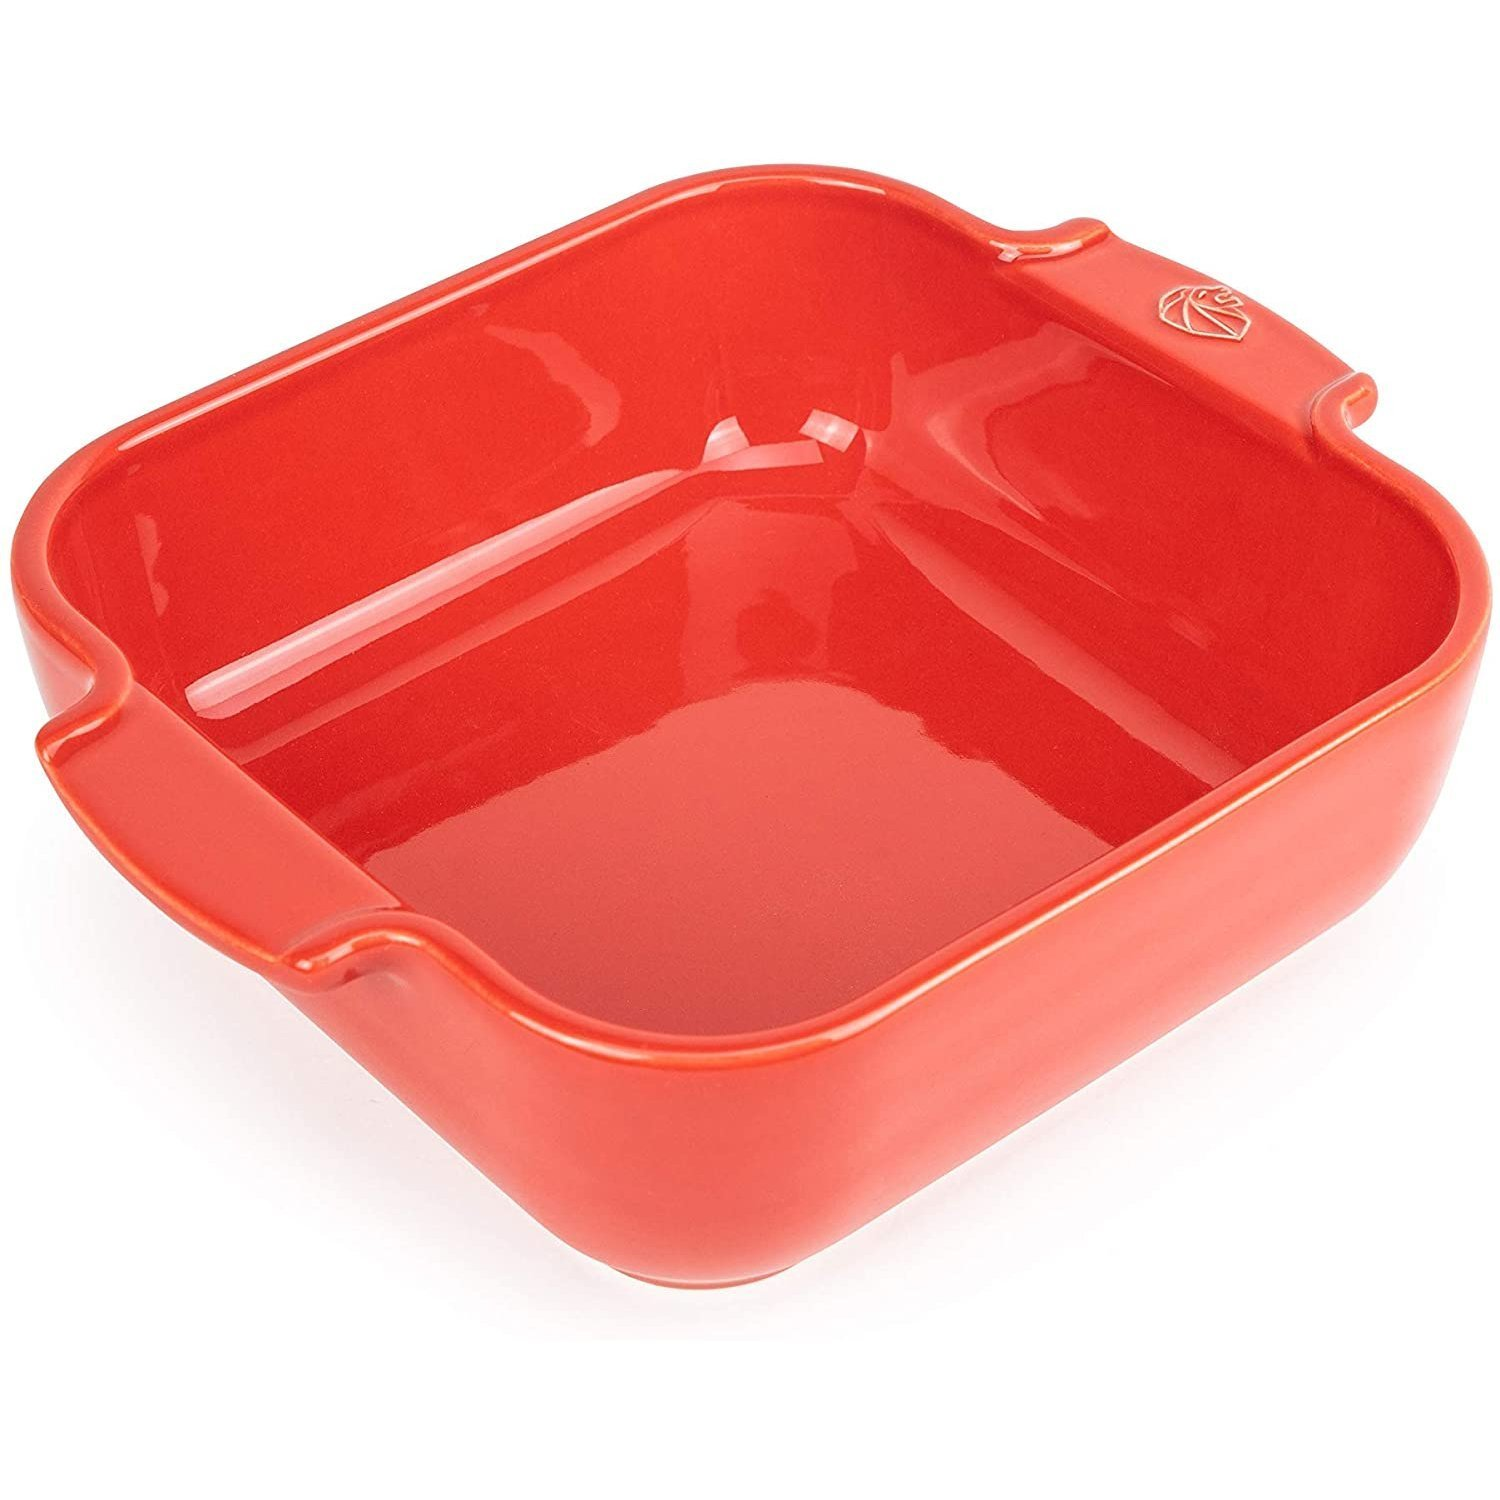 Appolia baking dish Red